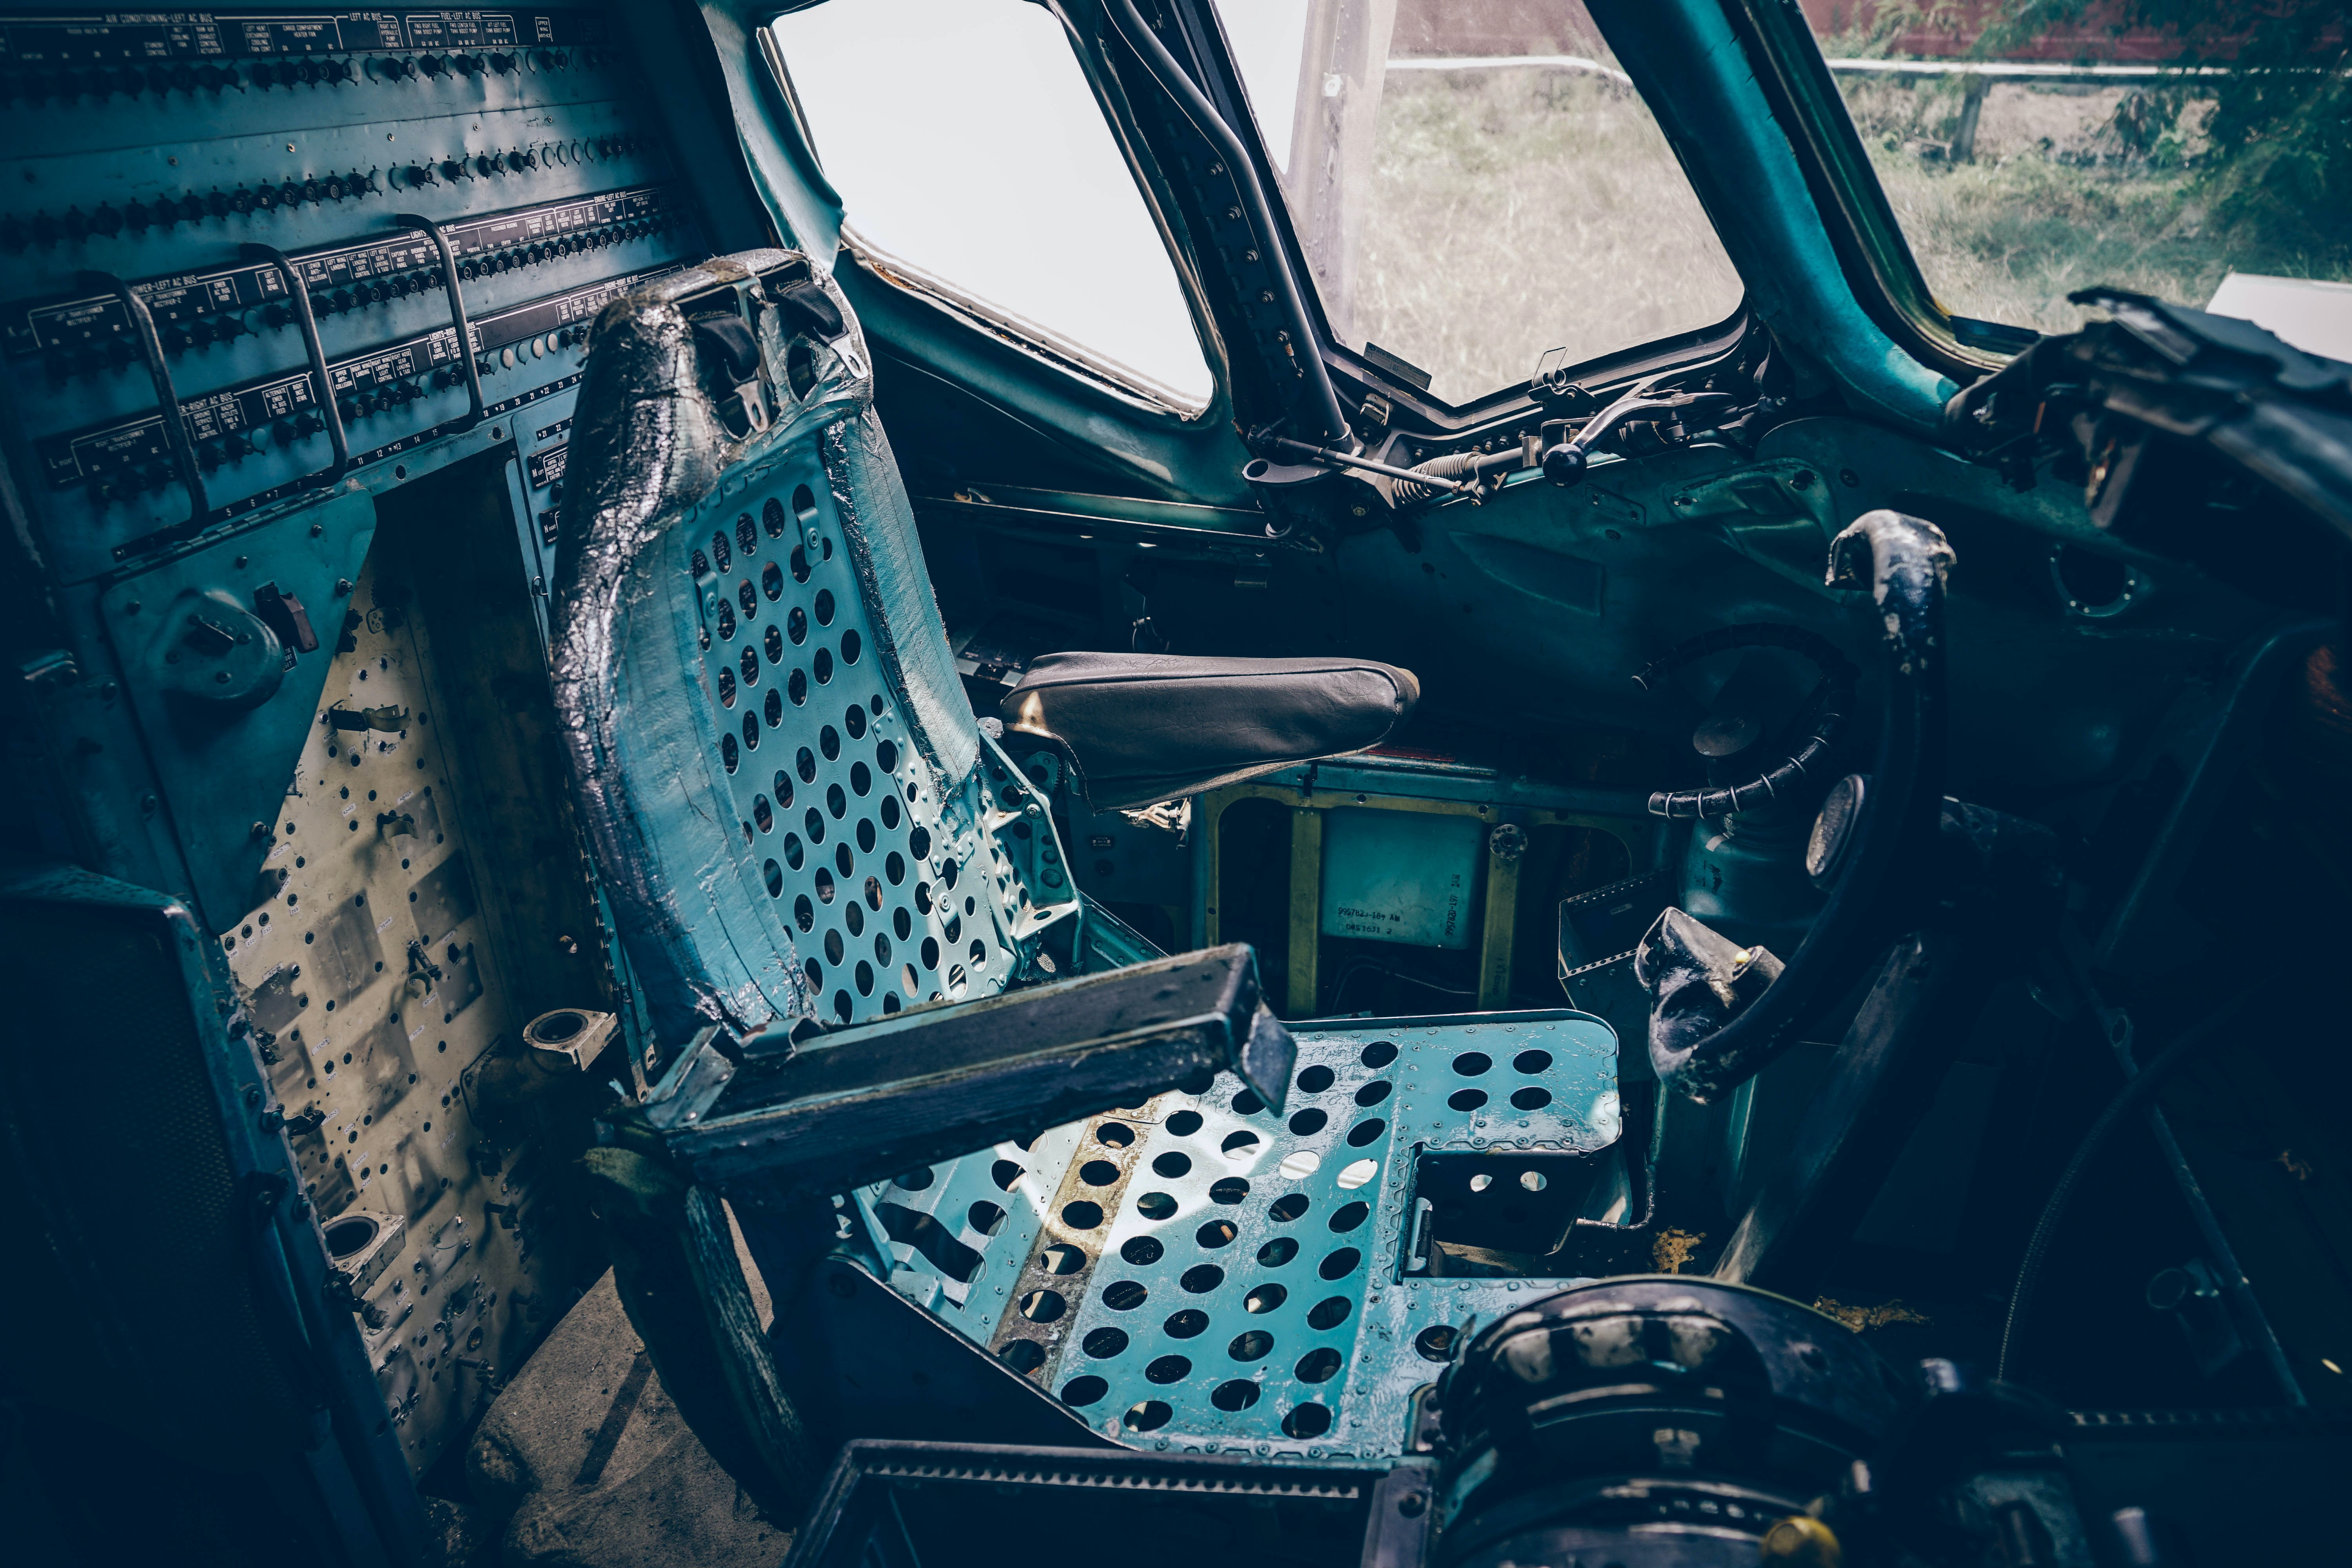 Seat inside a stripped car in Bangkok